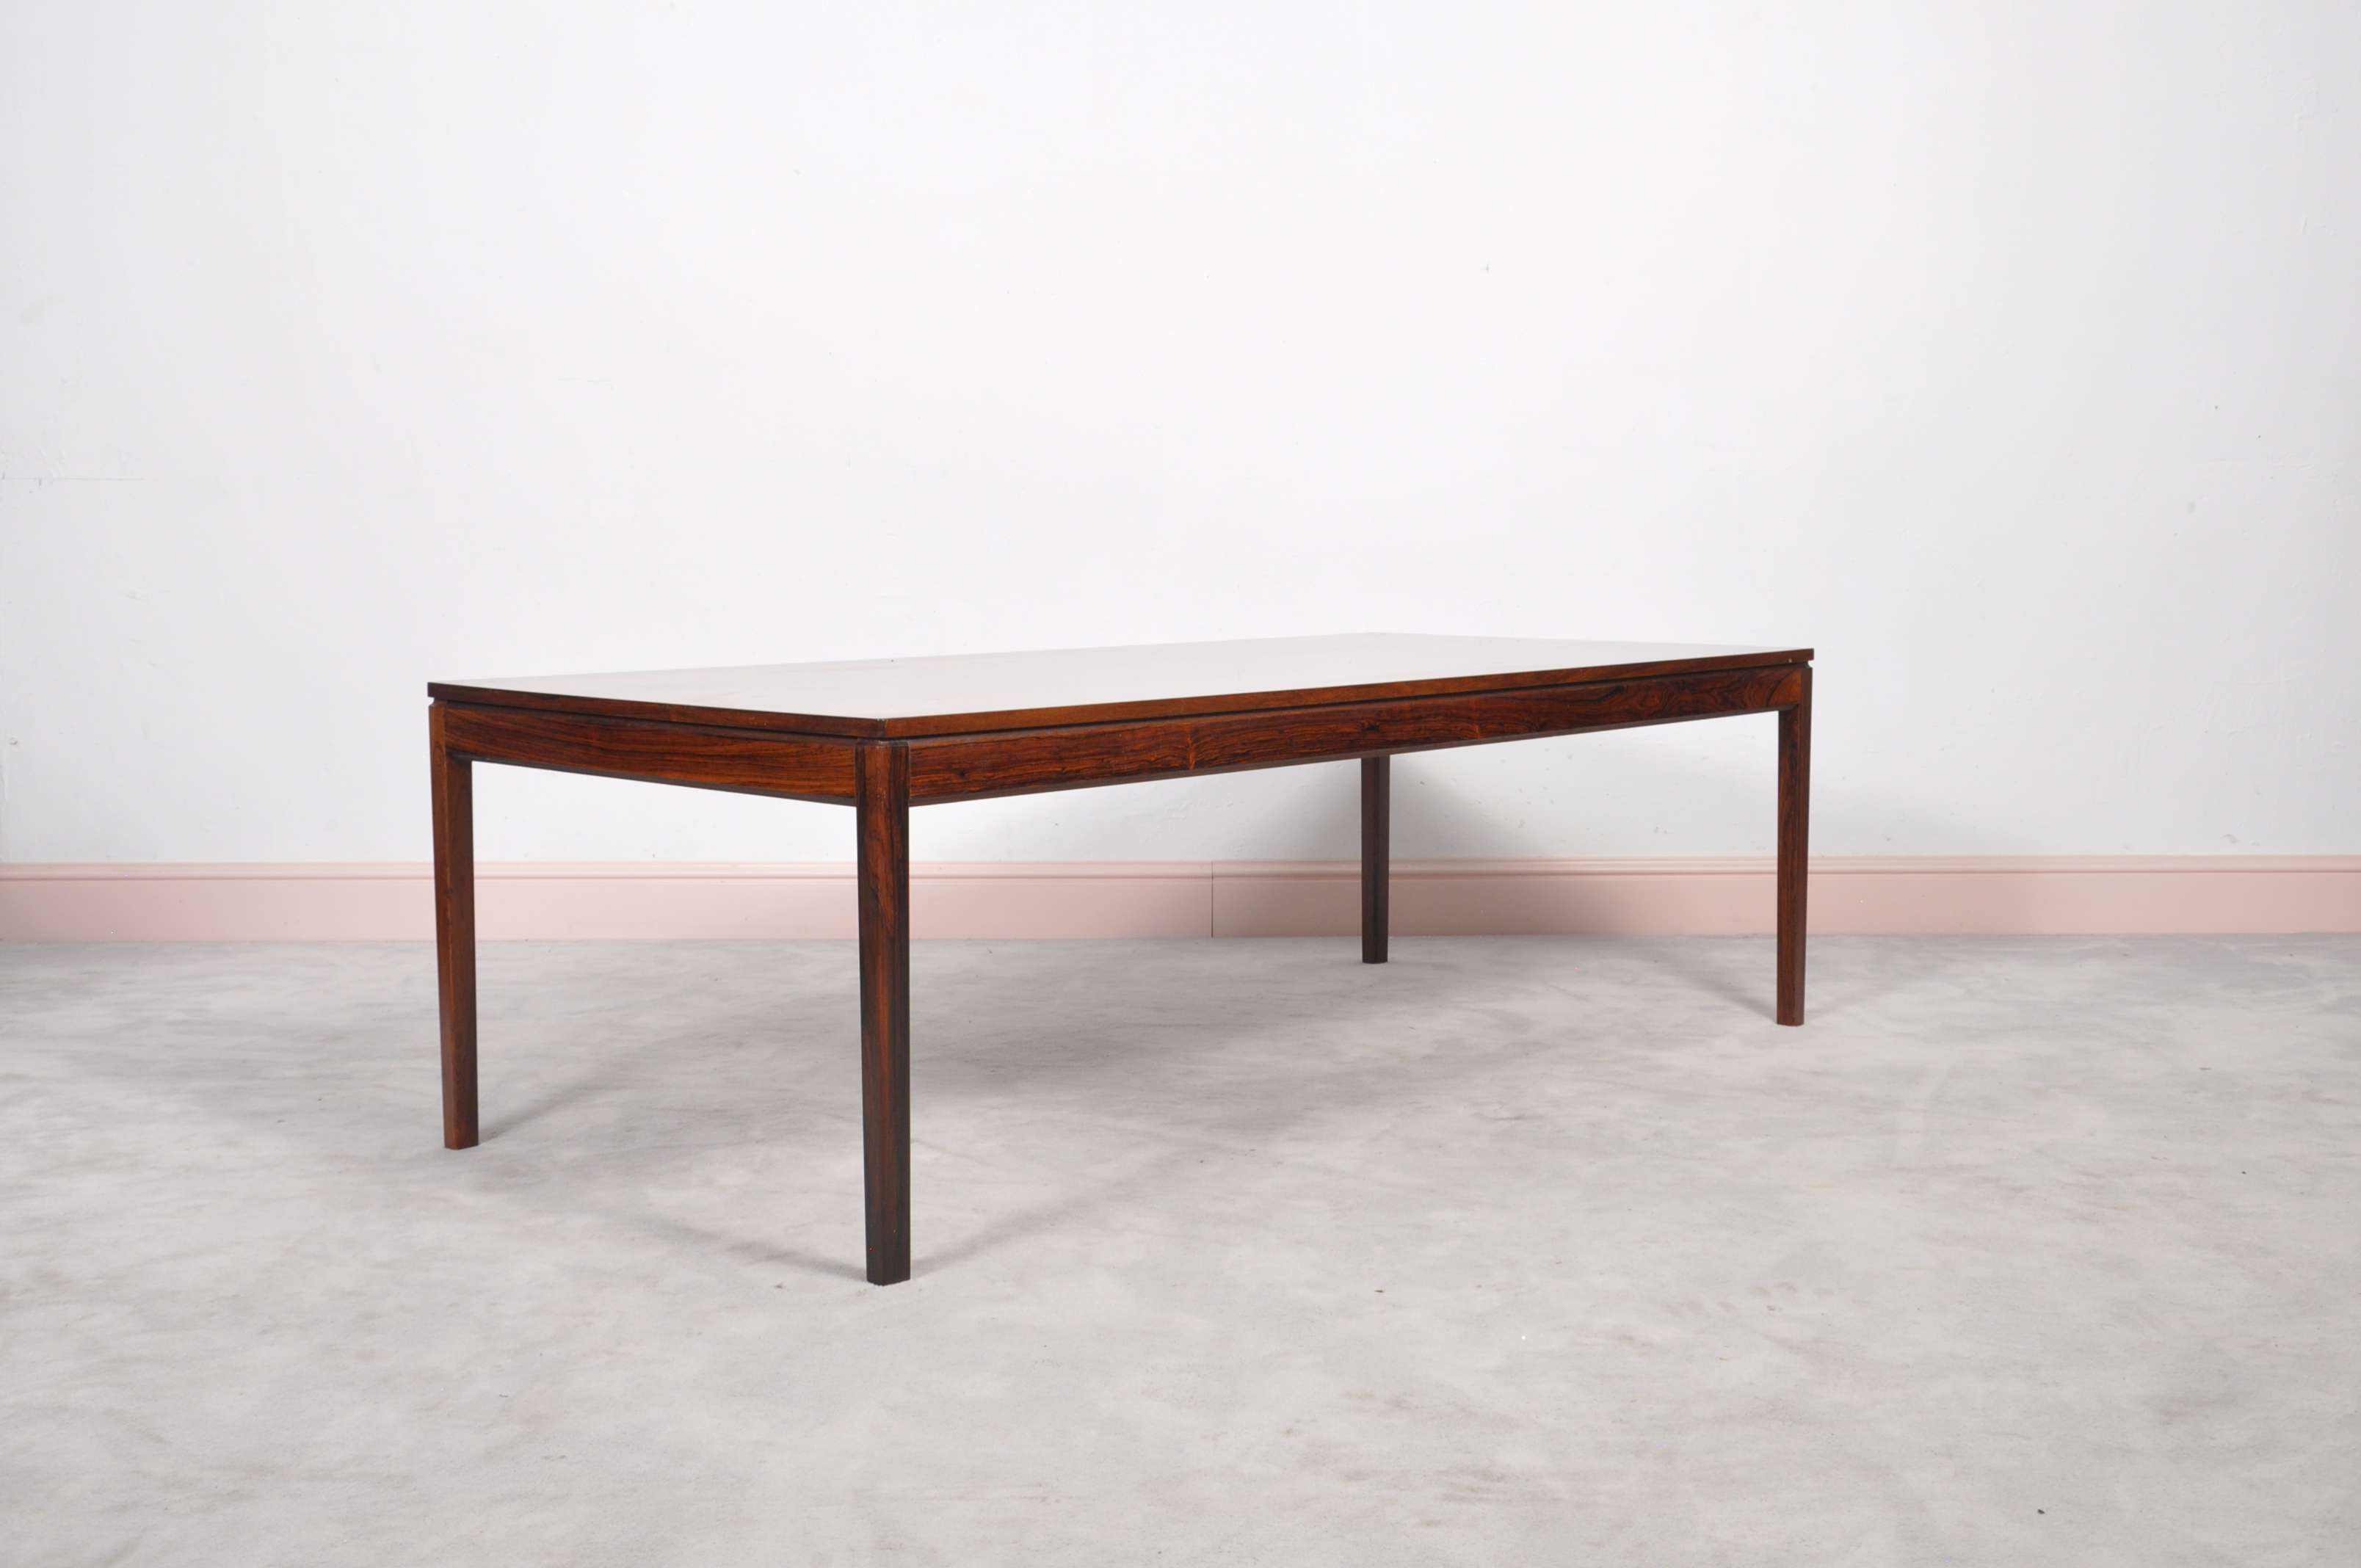 Preferred L Shaped Coffee Tables Within Coffee Tables : Danish Coffee Table In Teak With Glass Top Retros (View 17 of 20)